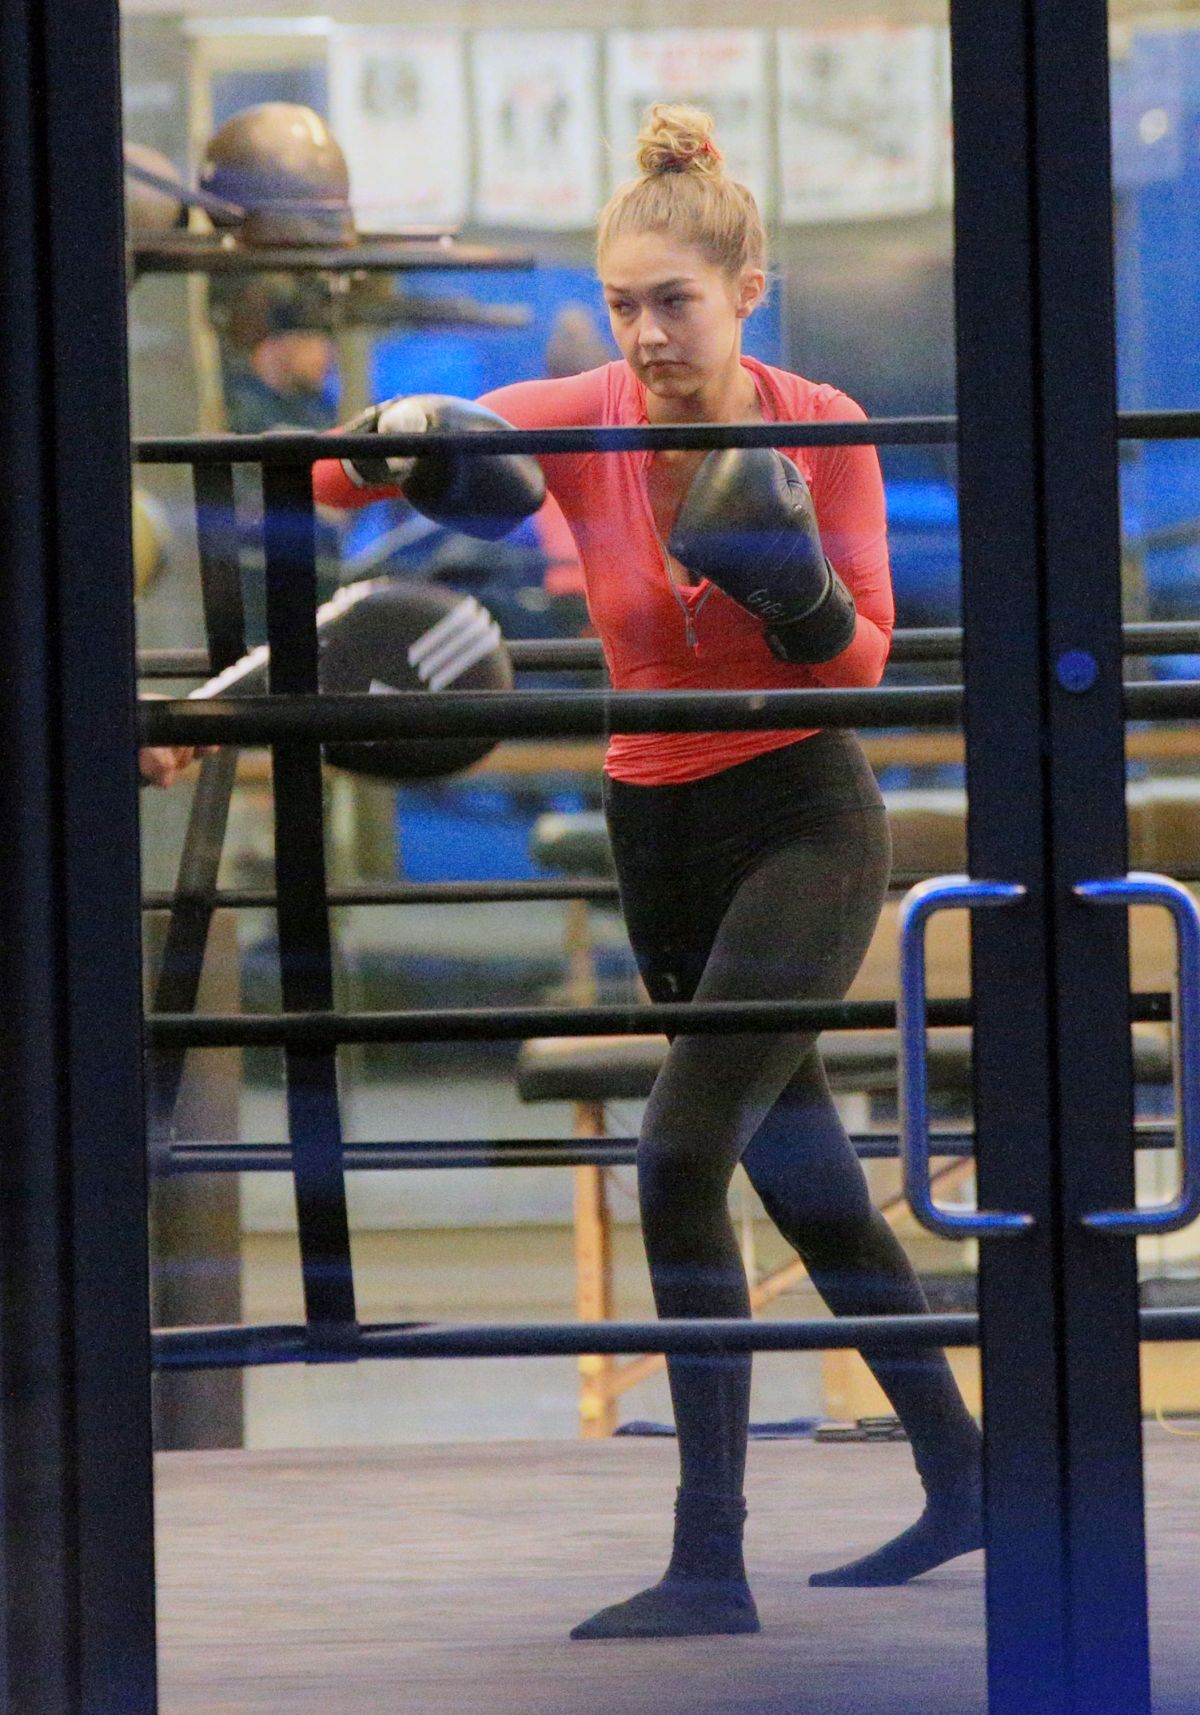 GIGI HADID at Boxing Class in New York 11/01/2015